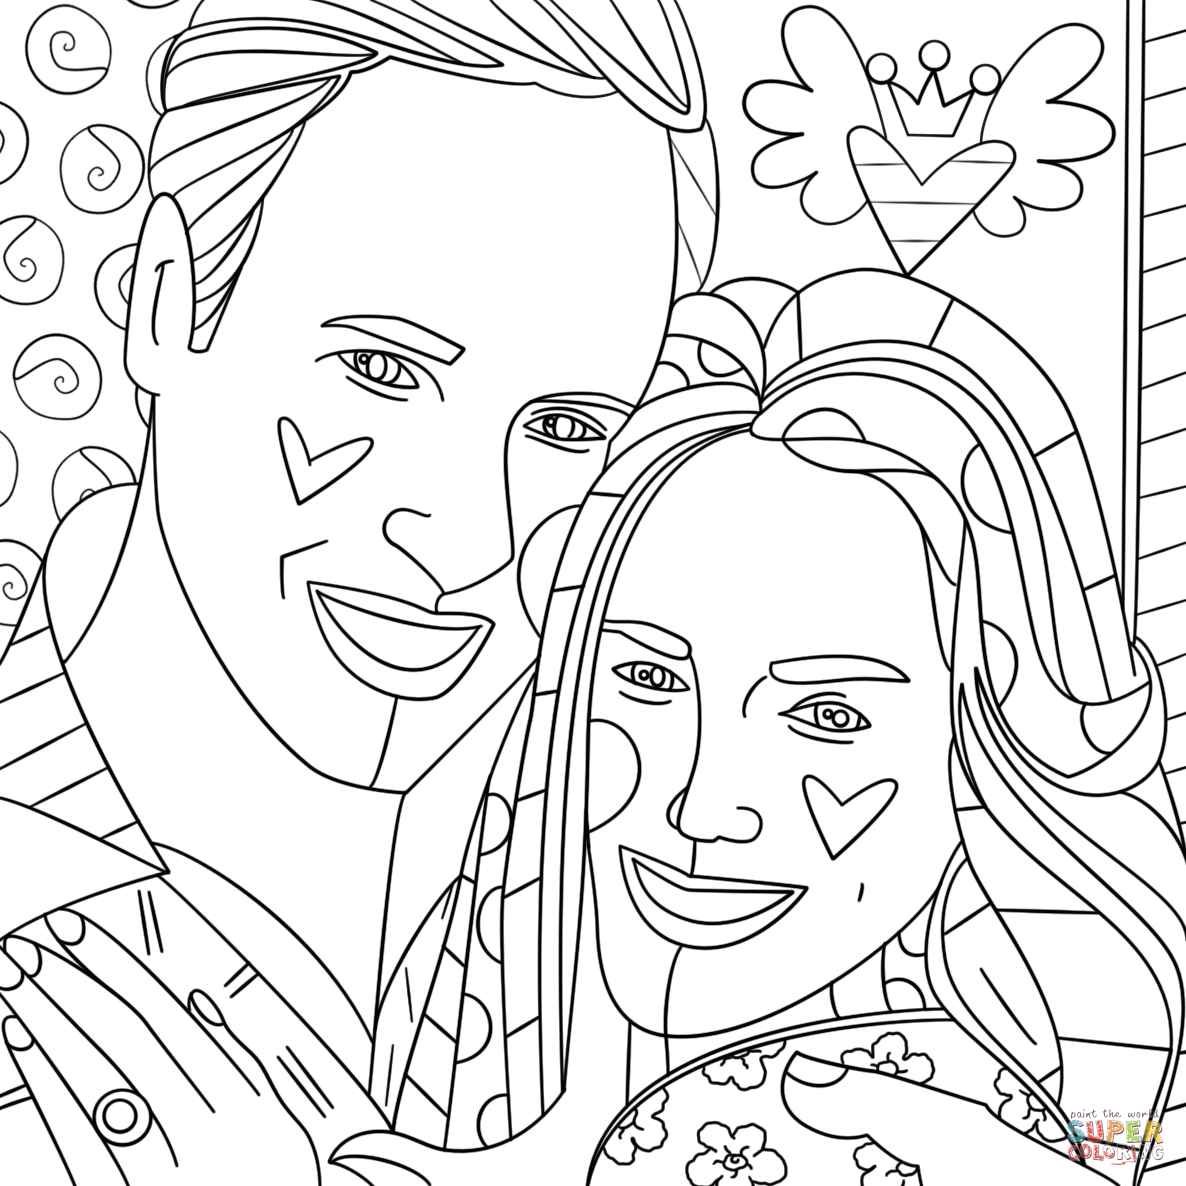 Kate Middleton And Prince William By Romero Britto Coloring Page